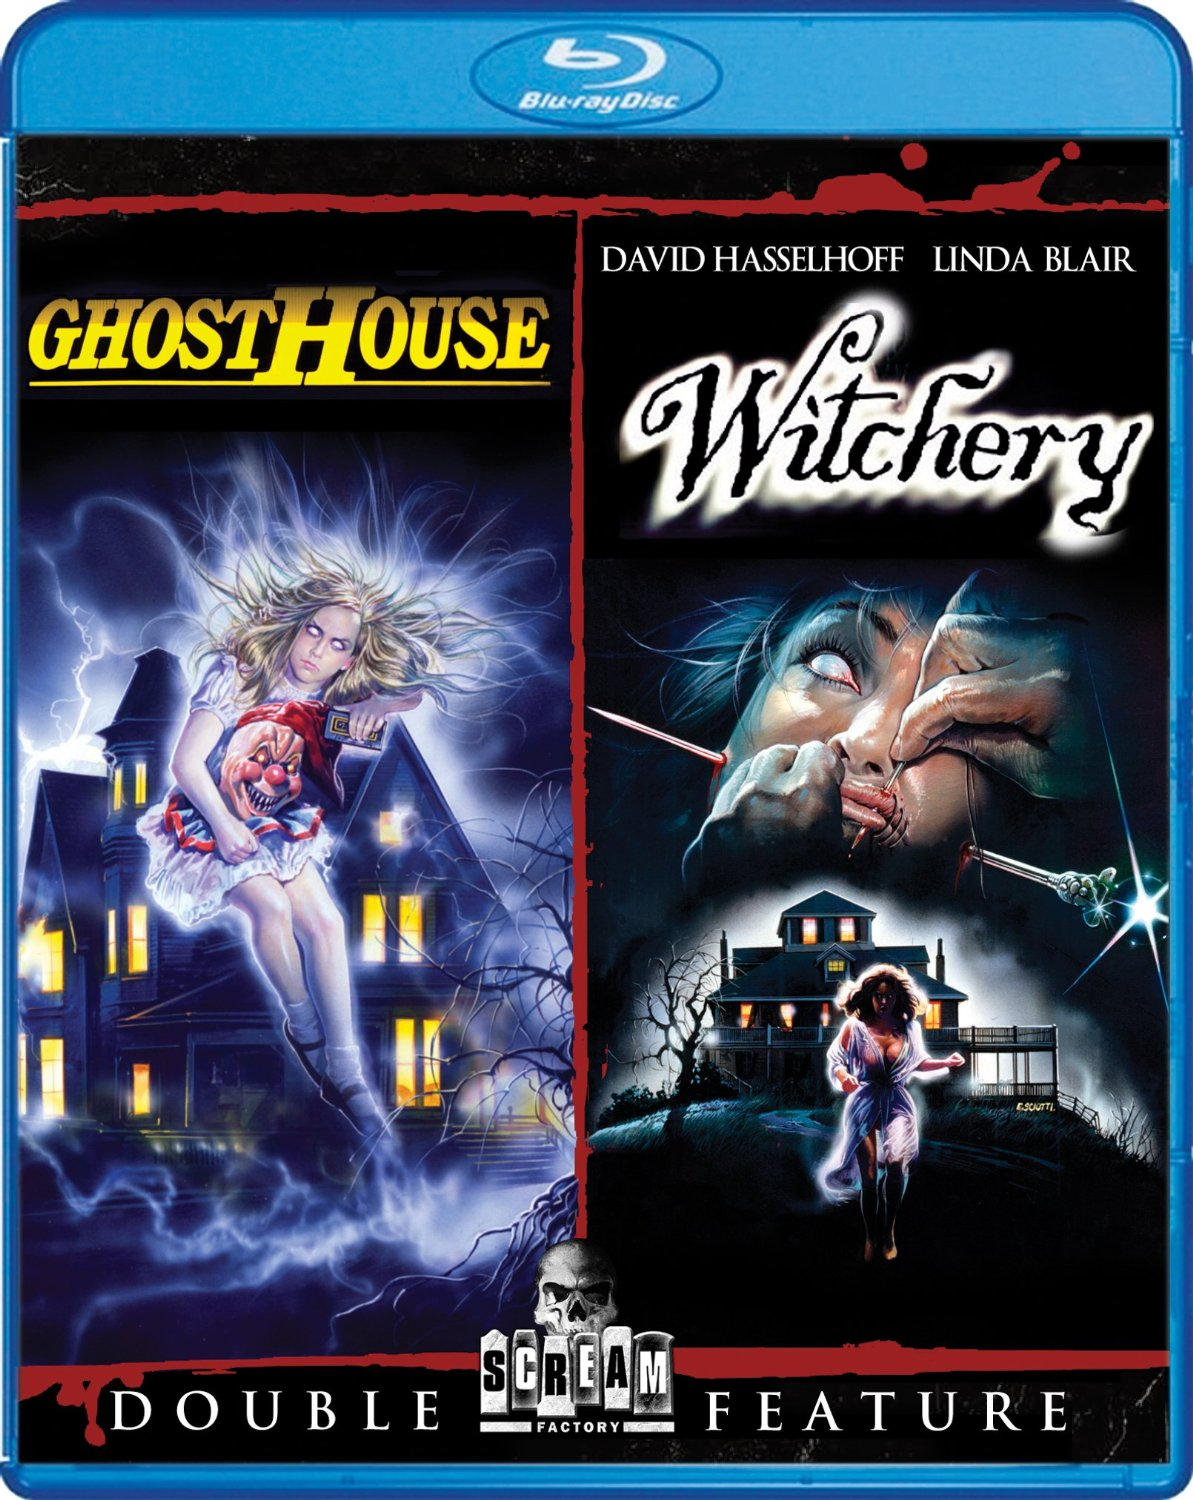 Ghosthouse/Witchery (Double Feature) Blu-ray | DVD NEWS FLASH: THE